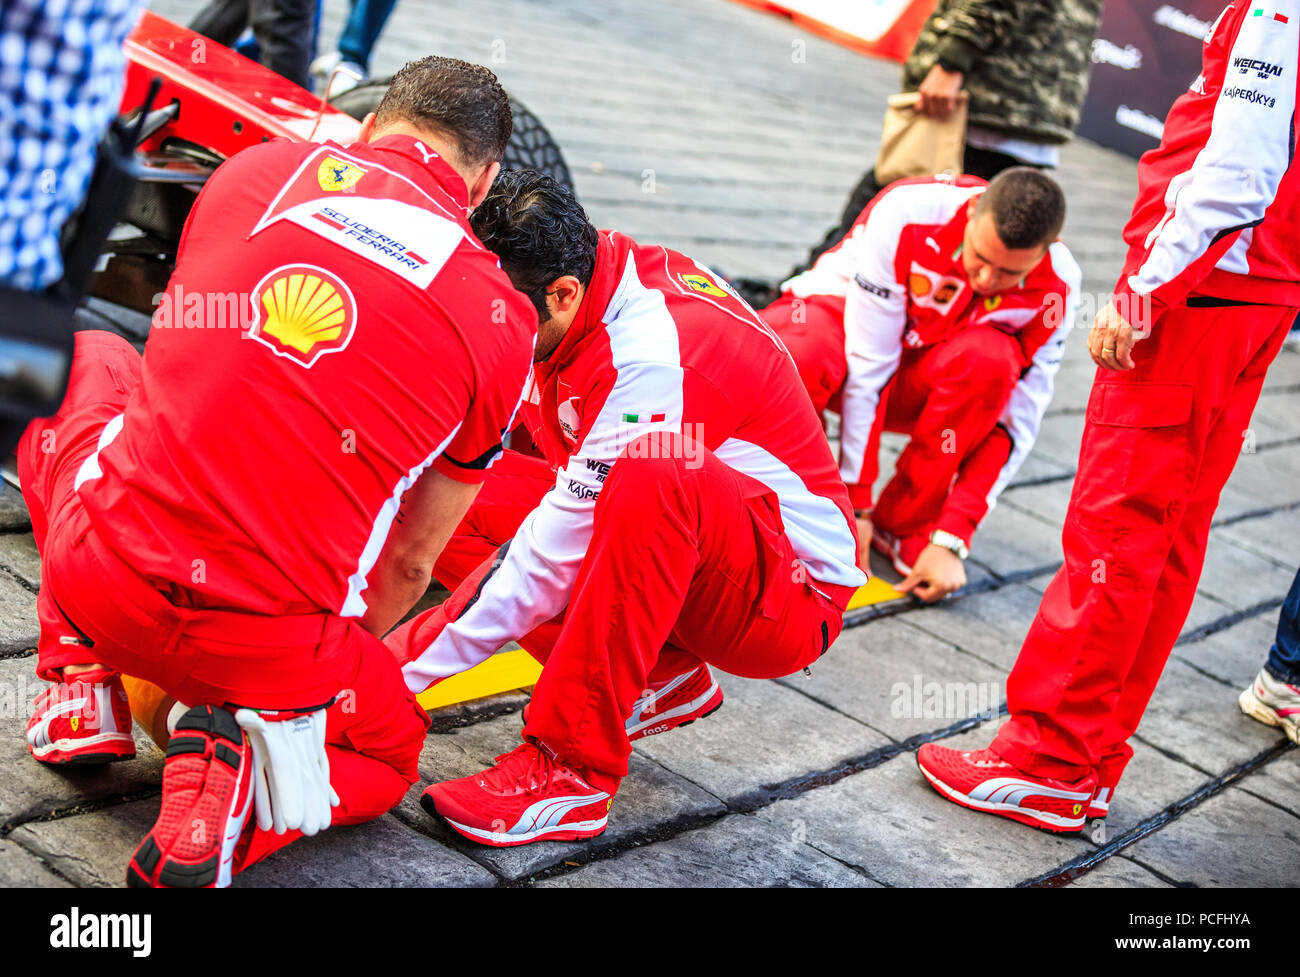 Mexico City, Mexico - July 08, 2015: Ferrari Crew marking the Pit Stop Lines. At the Scuderia Ferrari Street Demo By Telcel - Infinitum. - Stock Image